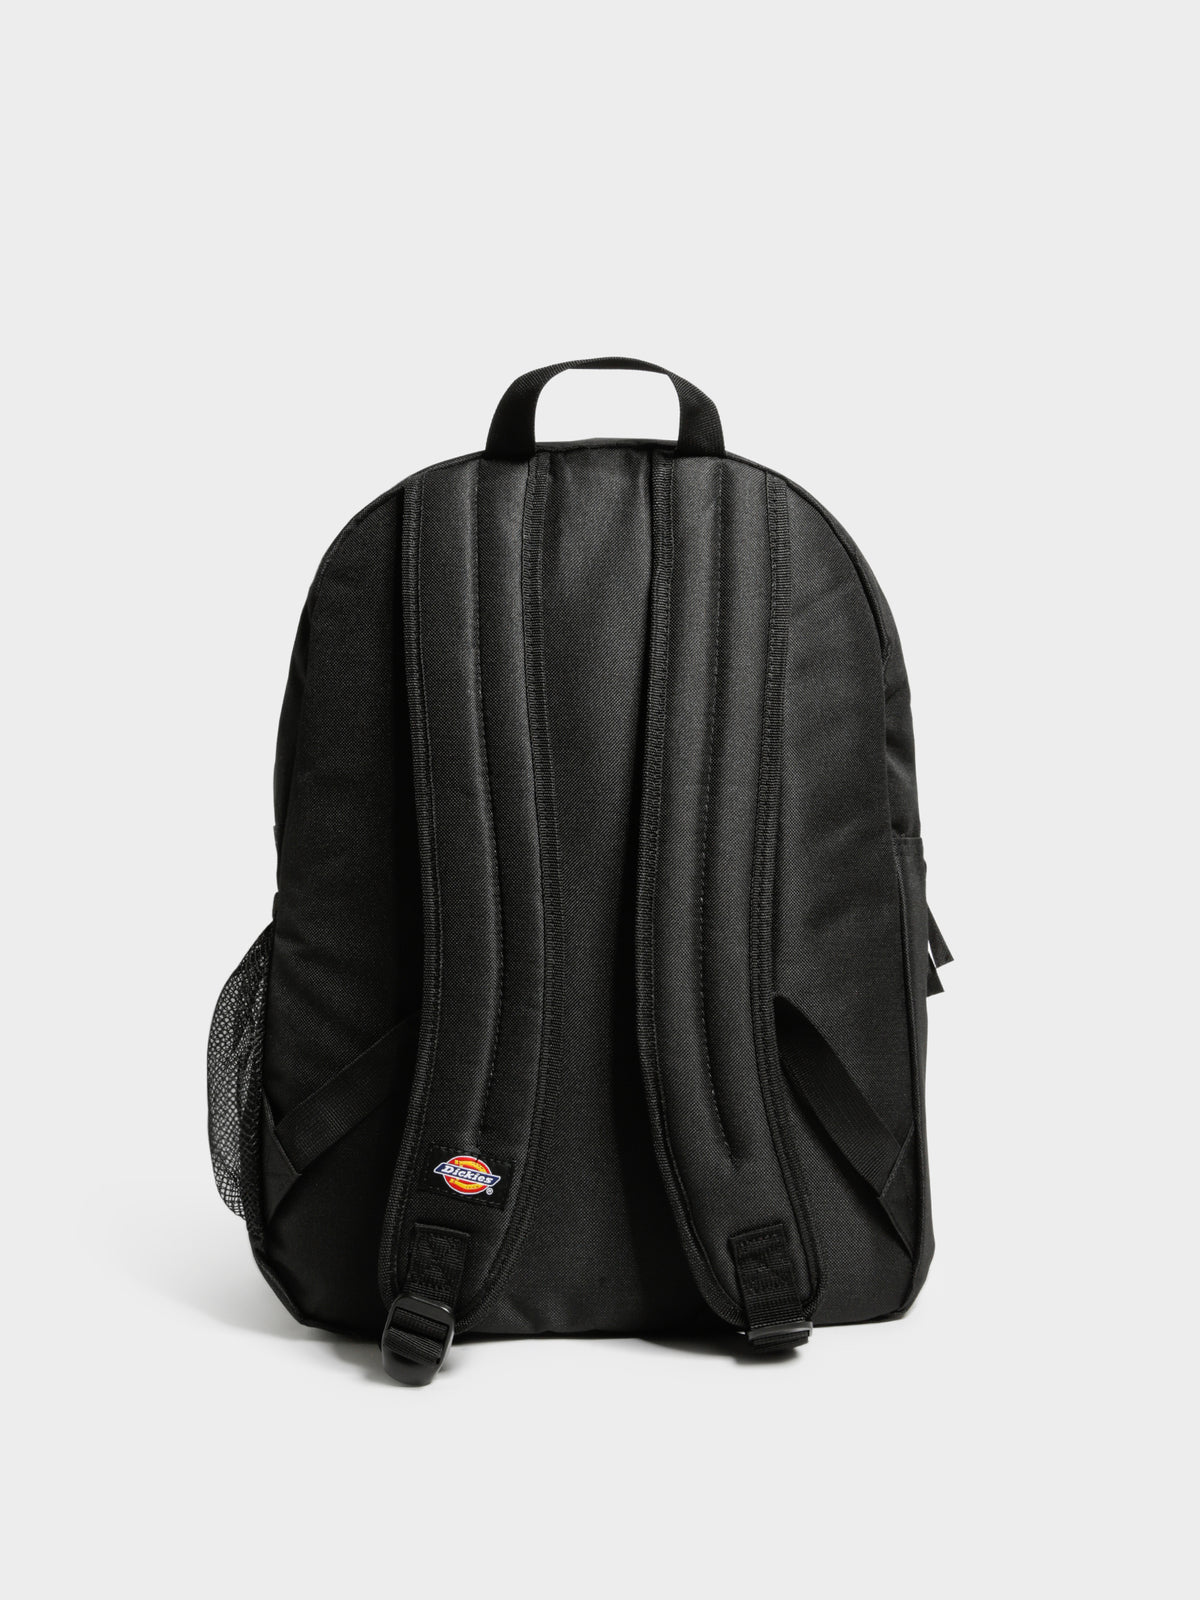 Student Back Pack in Black